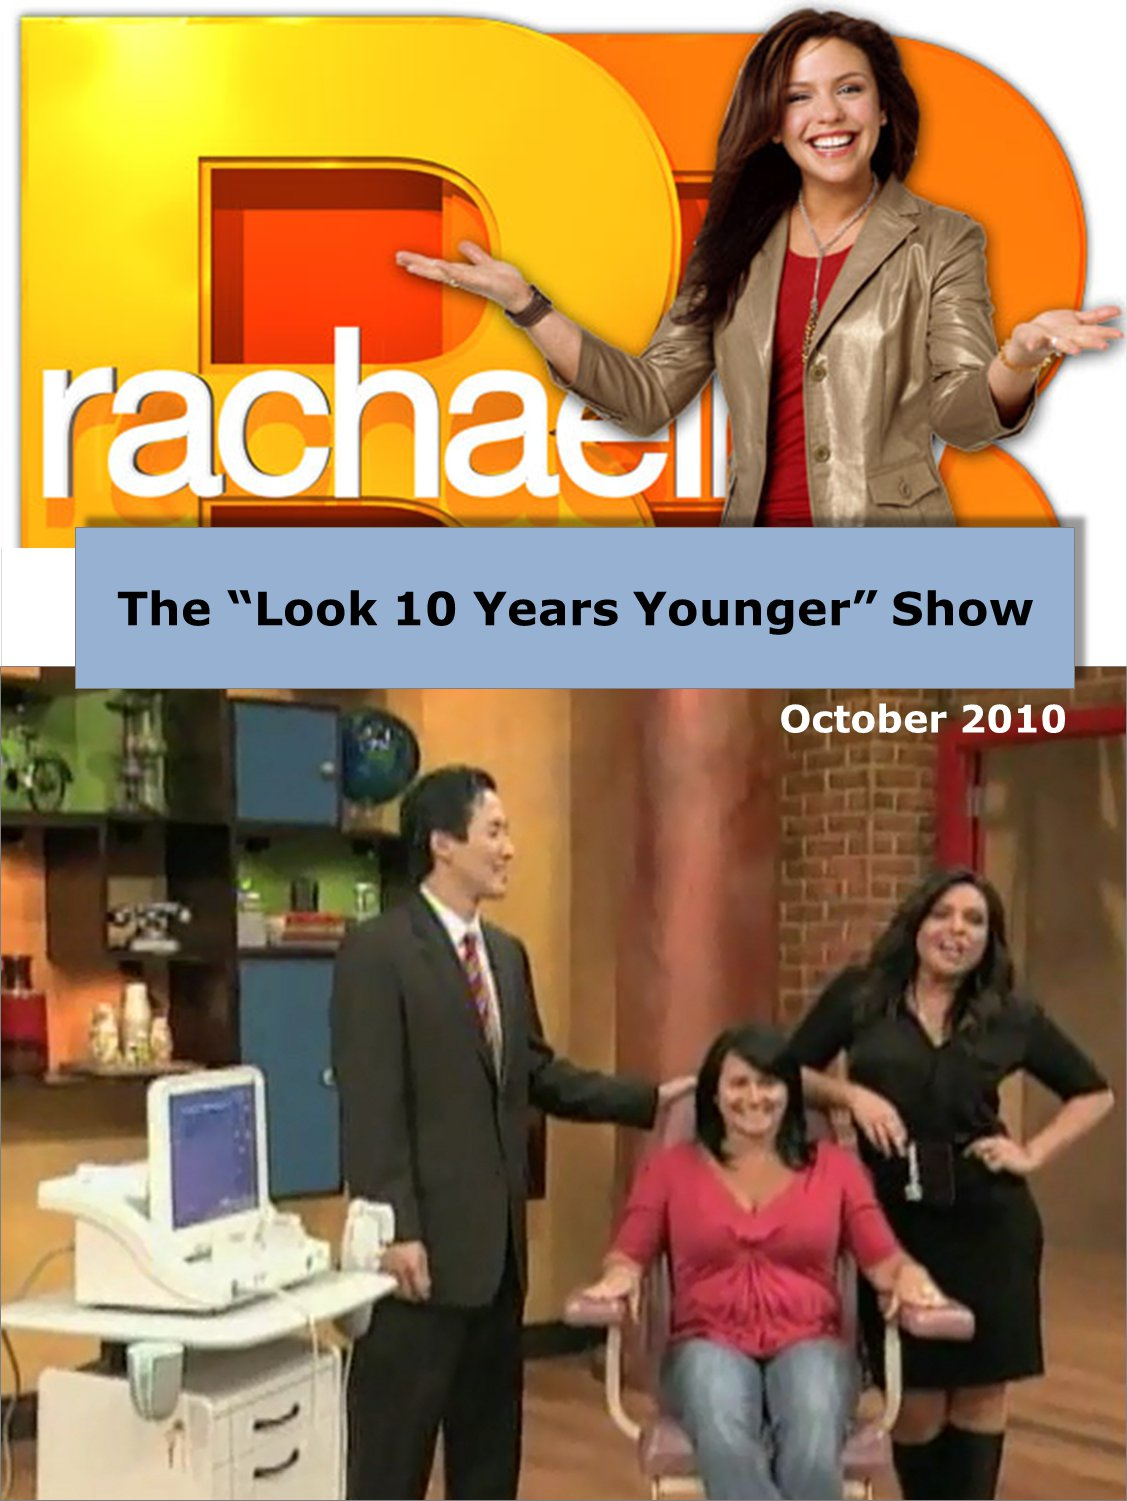 Rachael Ray Pregnant or Fat